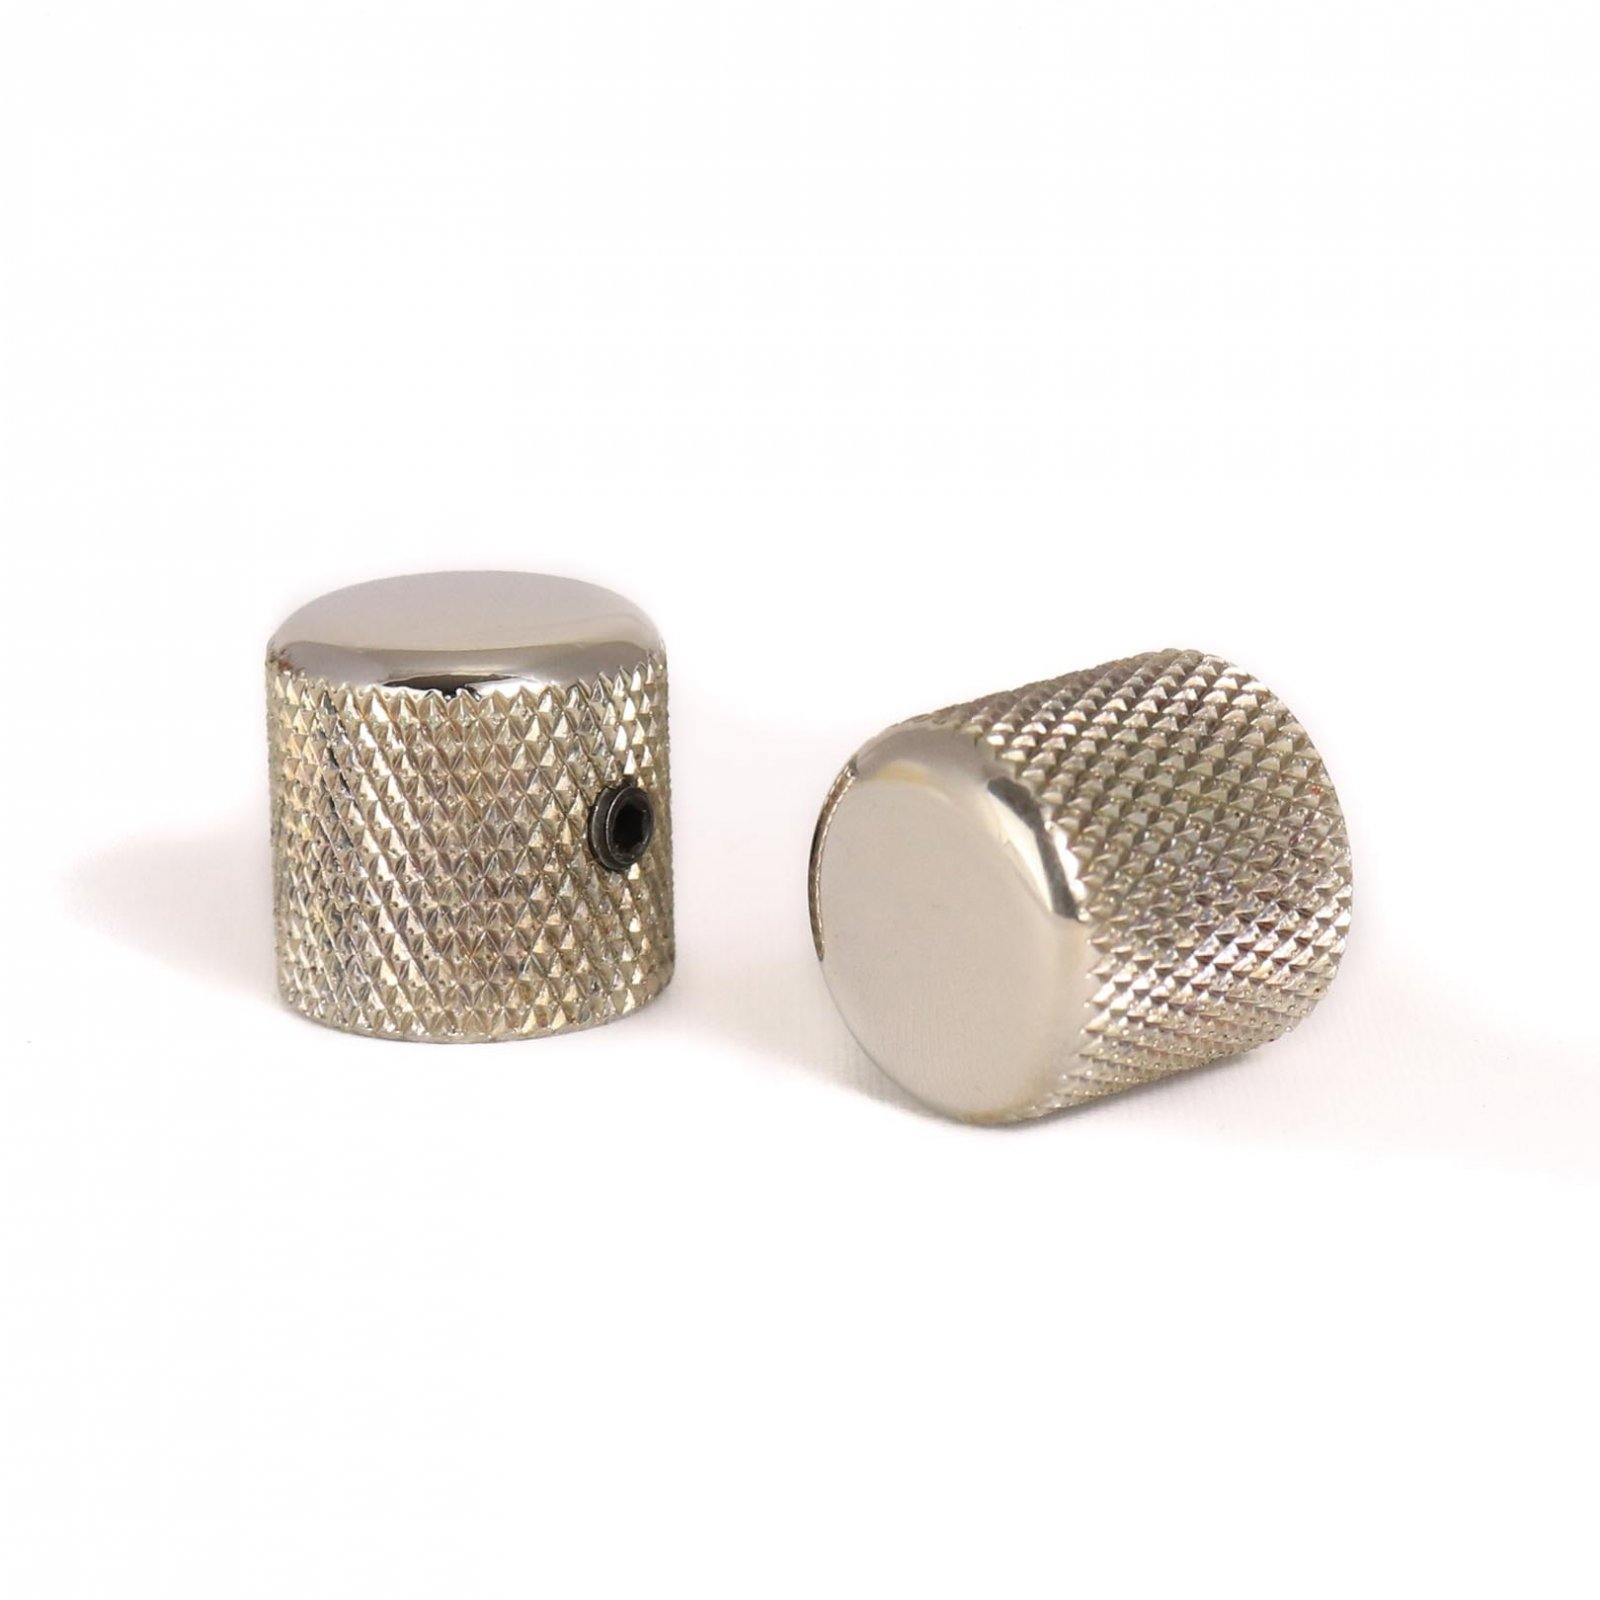 MannMade USA Knob Knurled Dome Top - Nickel